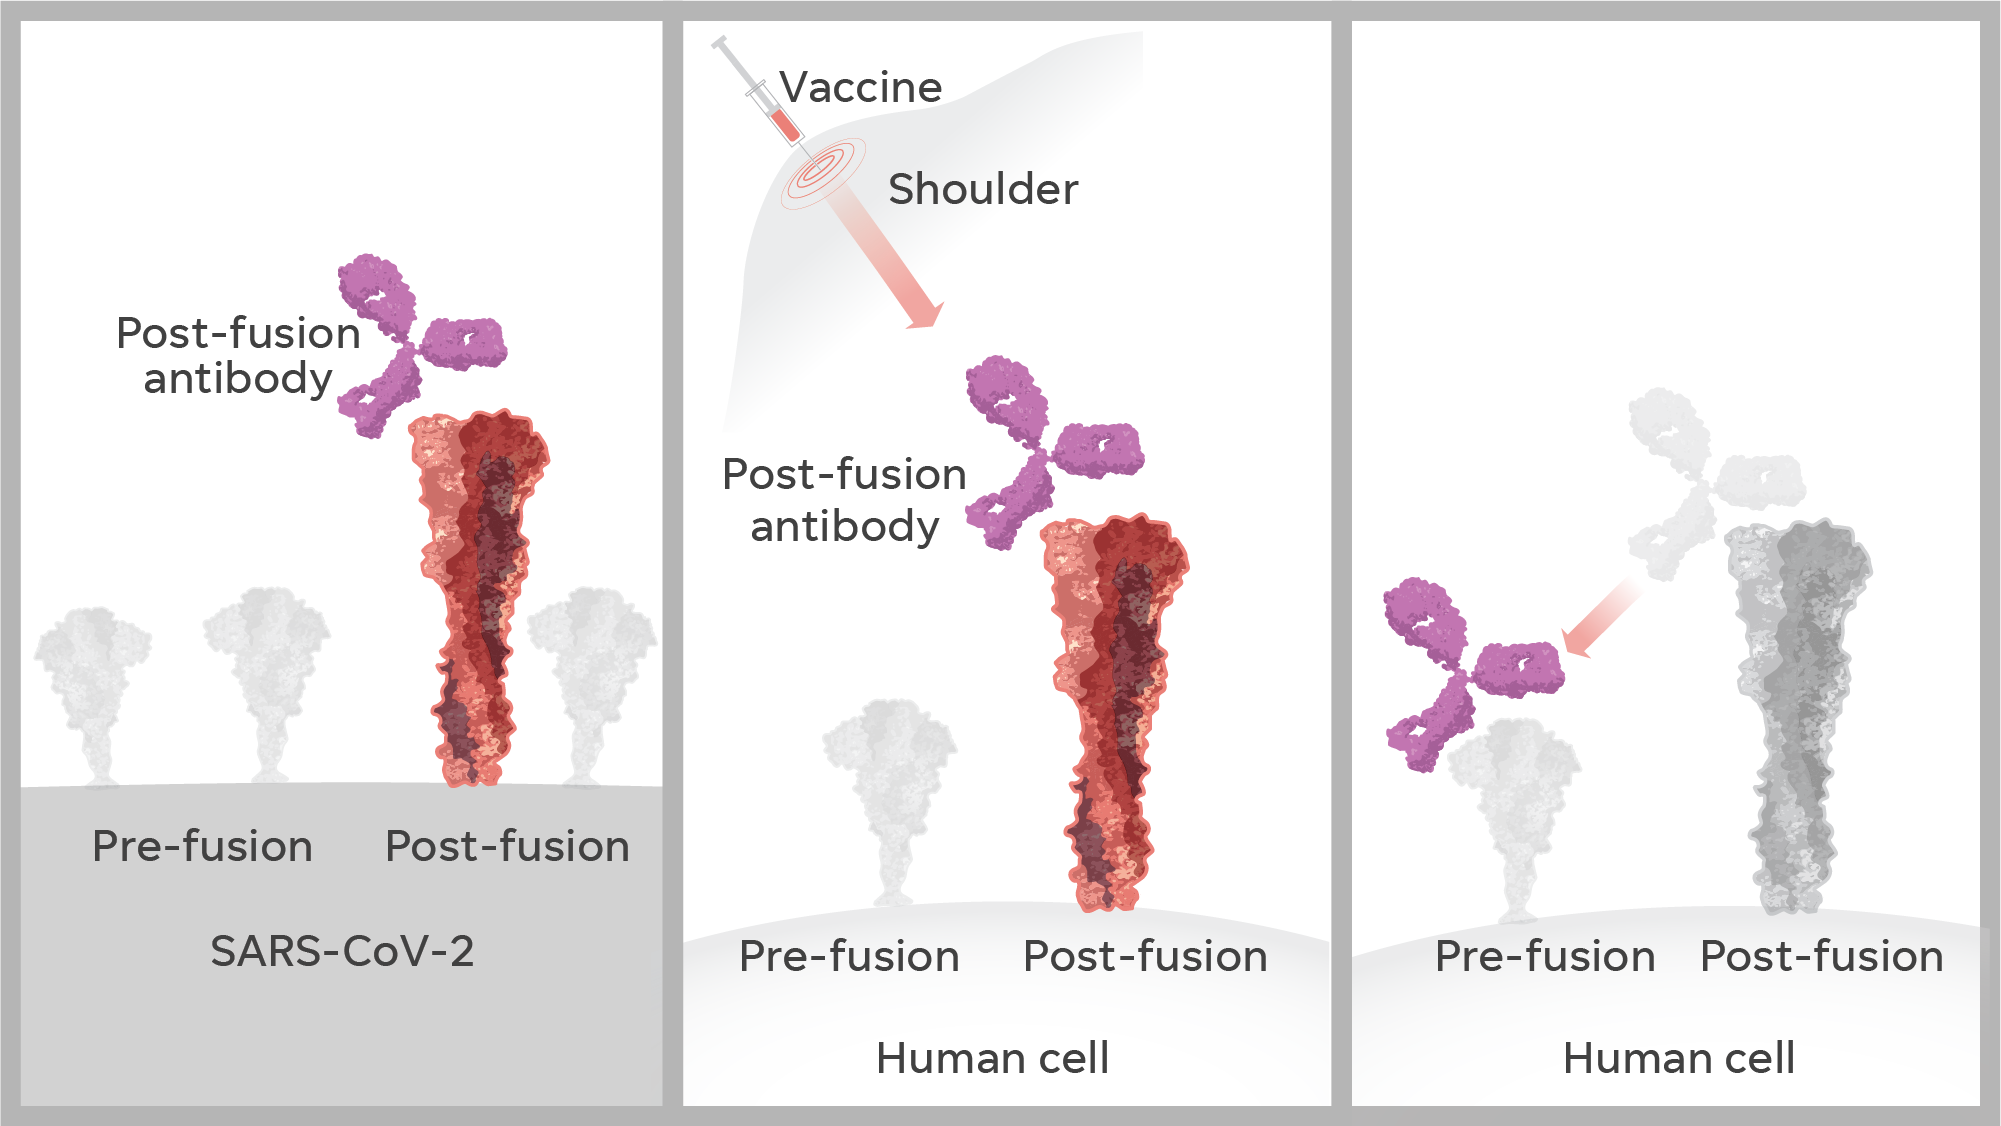 When making a vaccine, scientists discovered in 2013 that the spike proteins on the surface of a virus change shape radically. Before the virus attacks a human cell, the protein looks like a lollipop – its pre-fusion state. Afterward, post-fusion, it looks like a golf tee. A vaccine that mimics the golf-tee shape could produce less effective and potentially harmful antibodies.